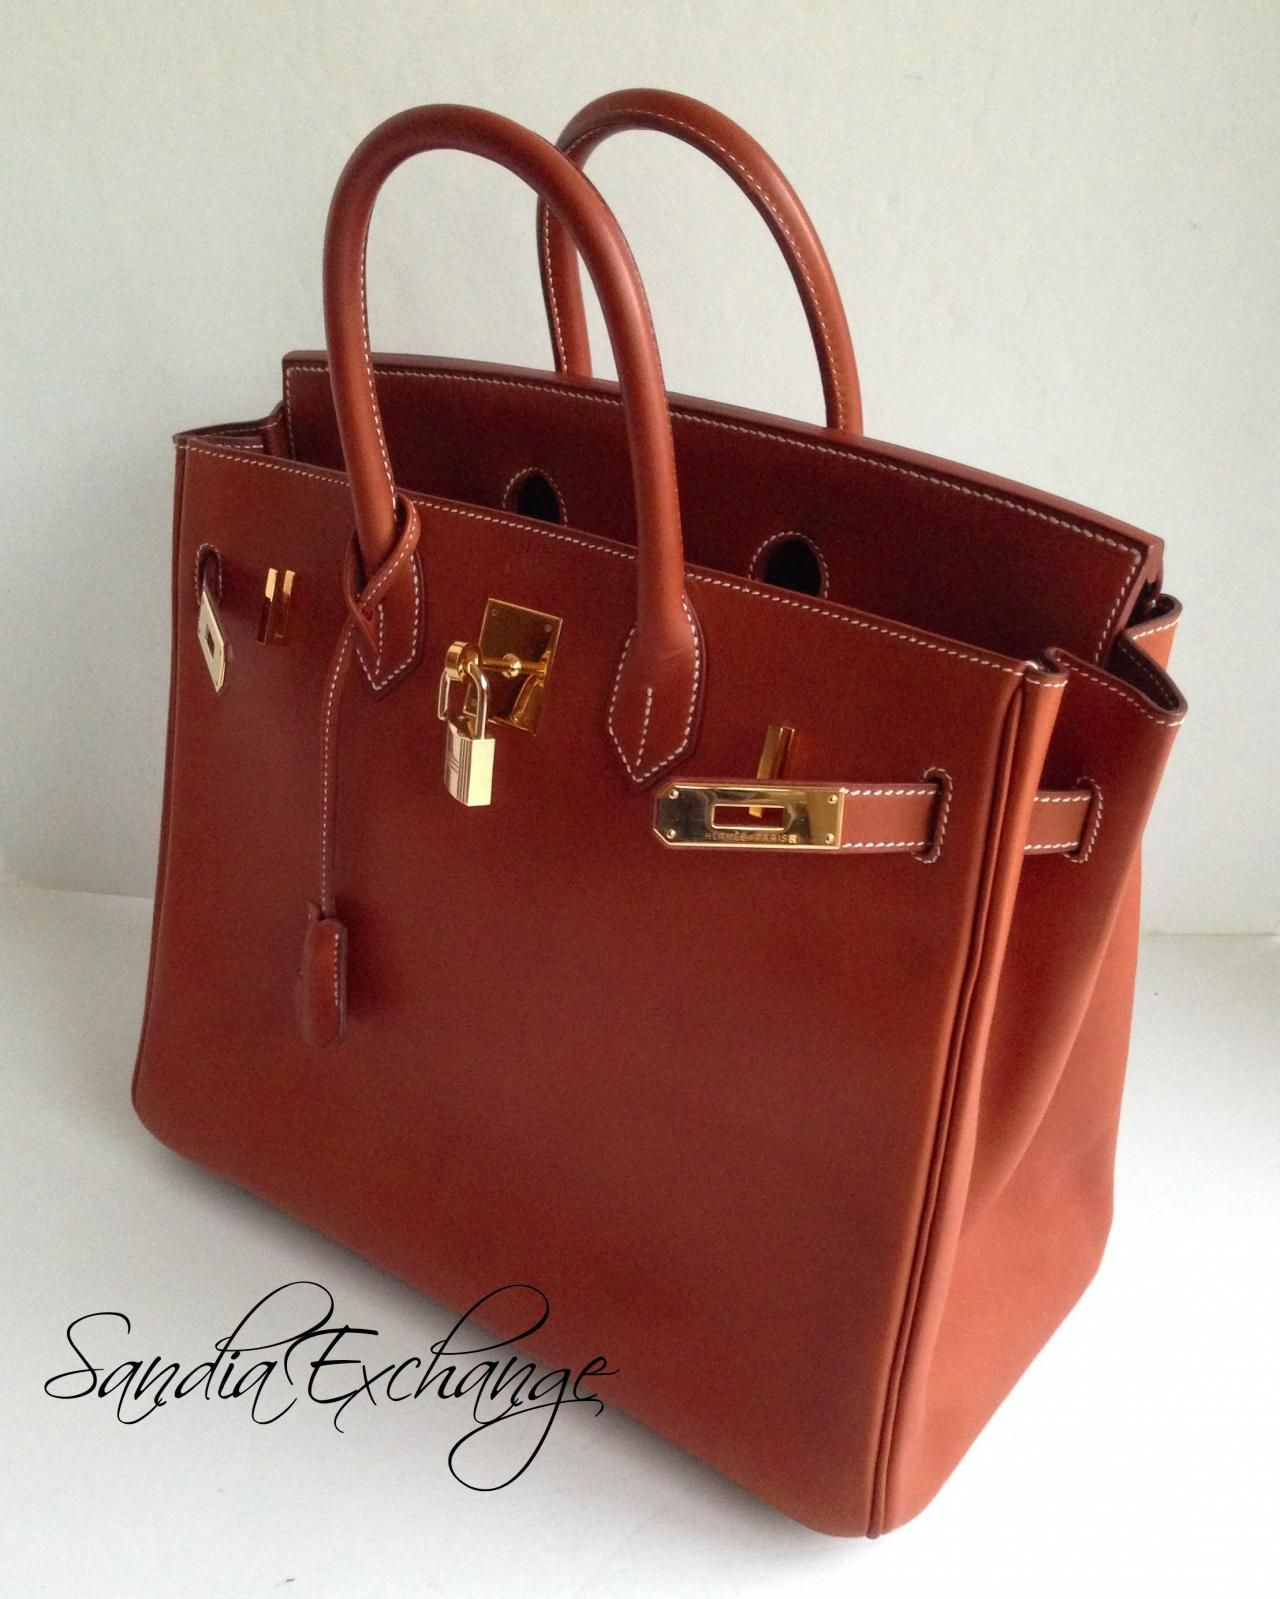 HERMES HAC 32 cm Barenia Birkin Fauve Gold Hardware Authentic HERMÈS -  Images hosted at BiggerBids.com ea3f2dfc0f